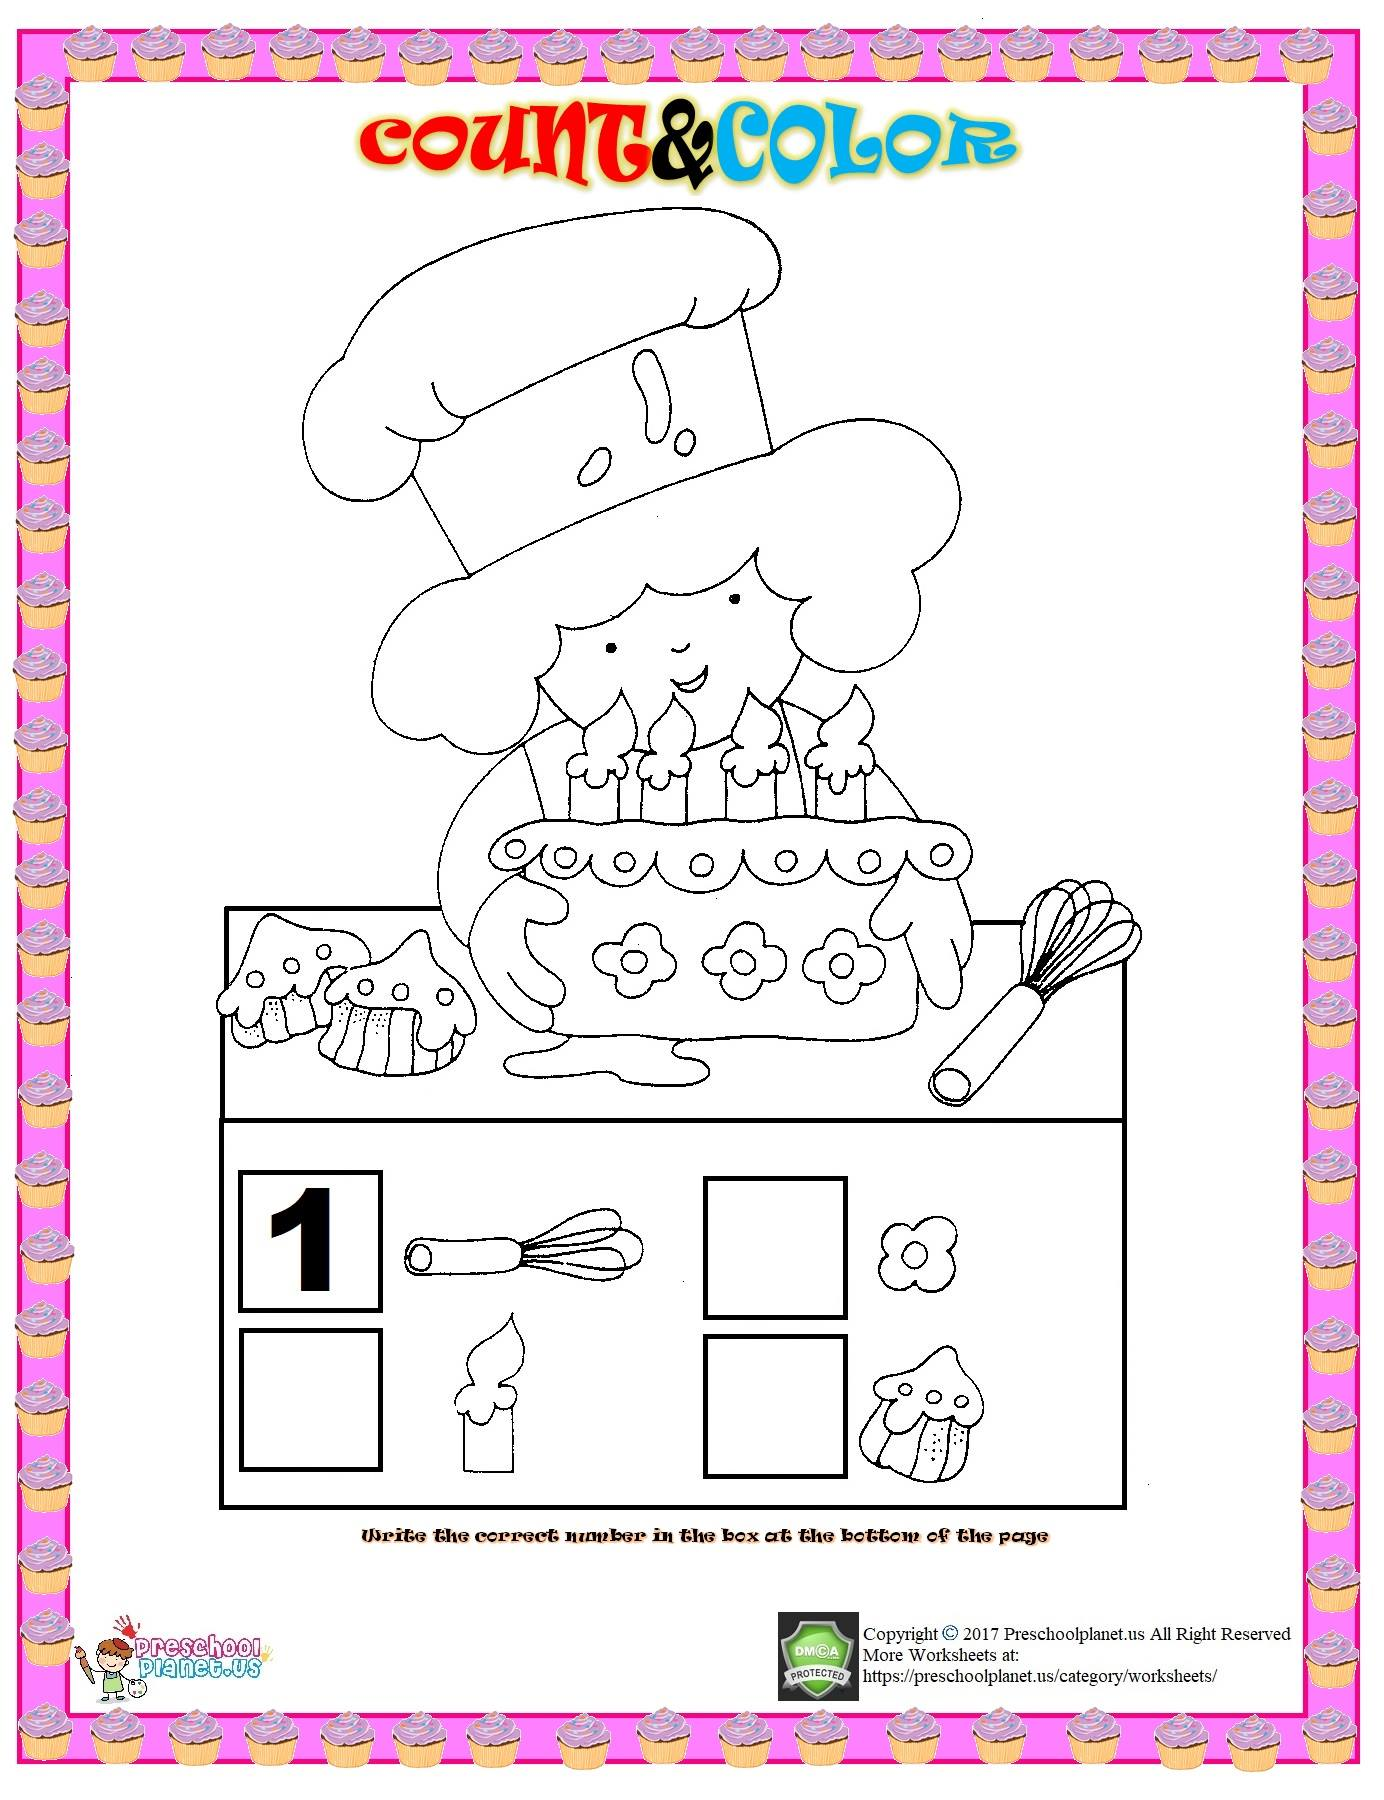 Number Count And Color Worksheet Preschoolplanet